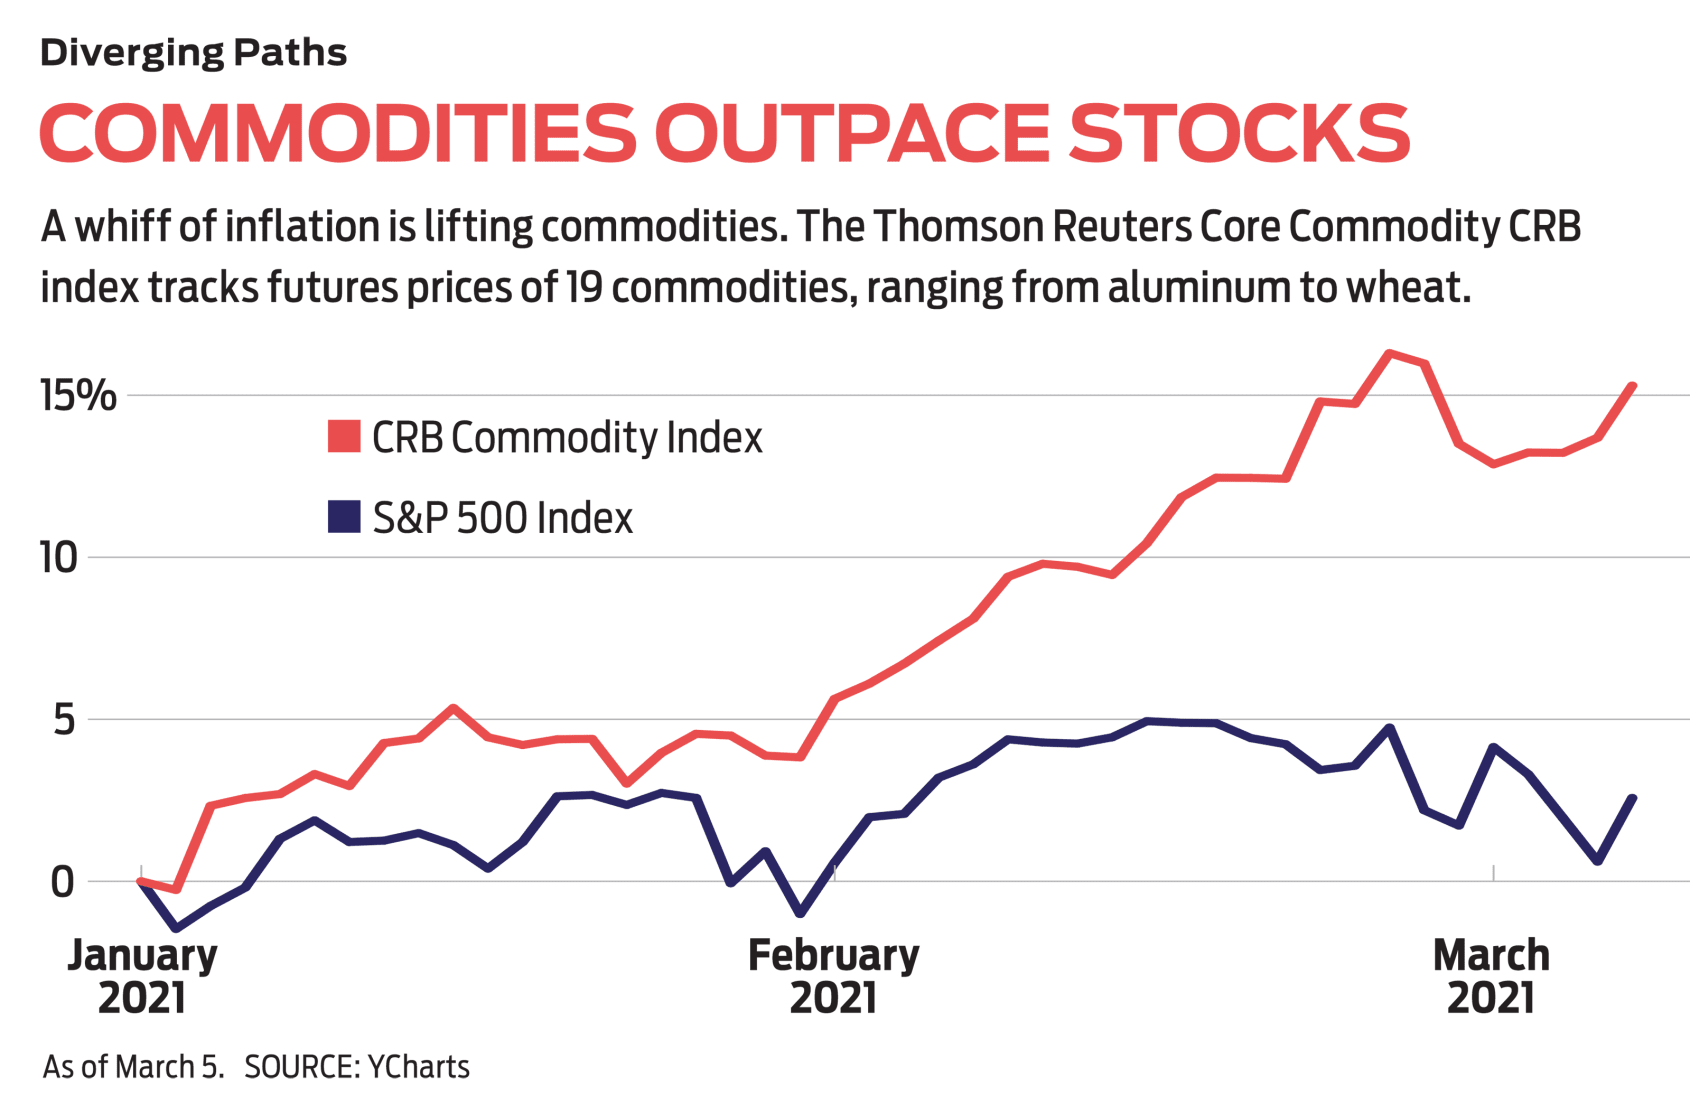 Commodities Outpace Stocks Chart